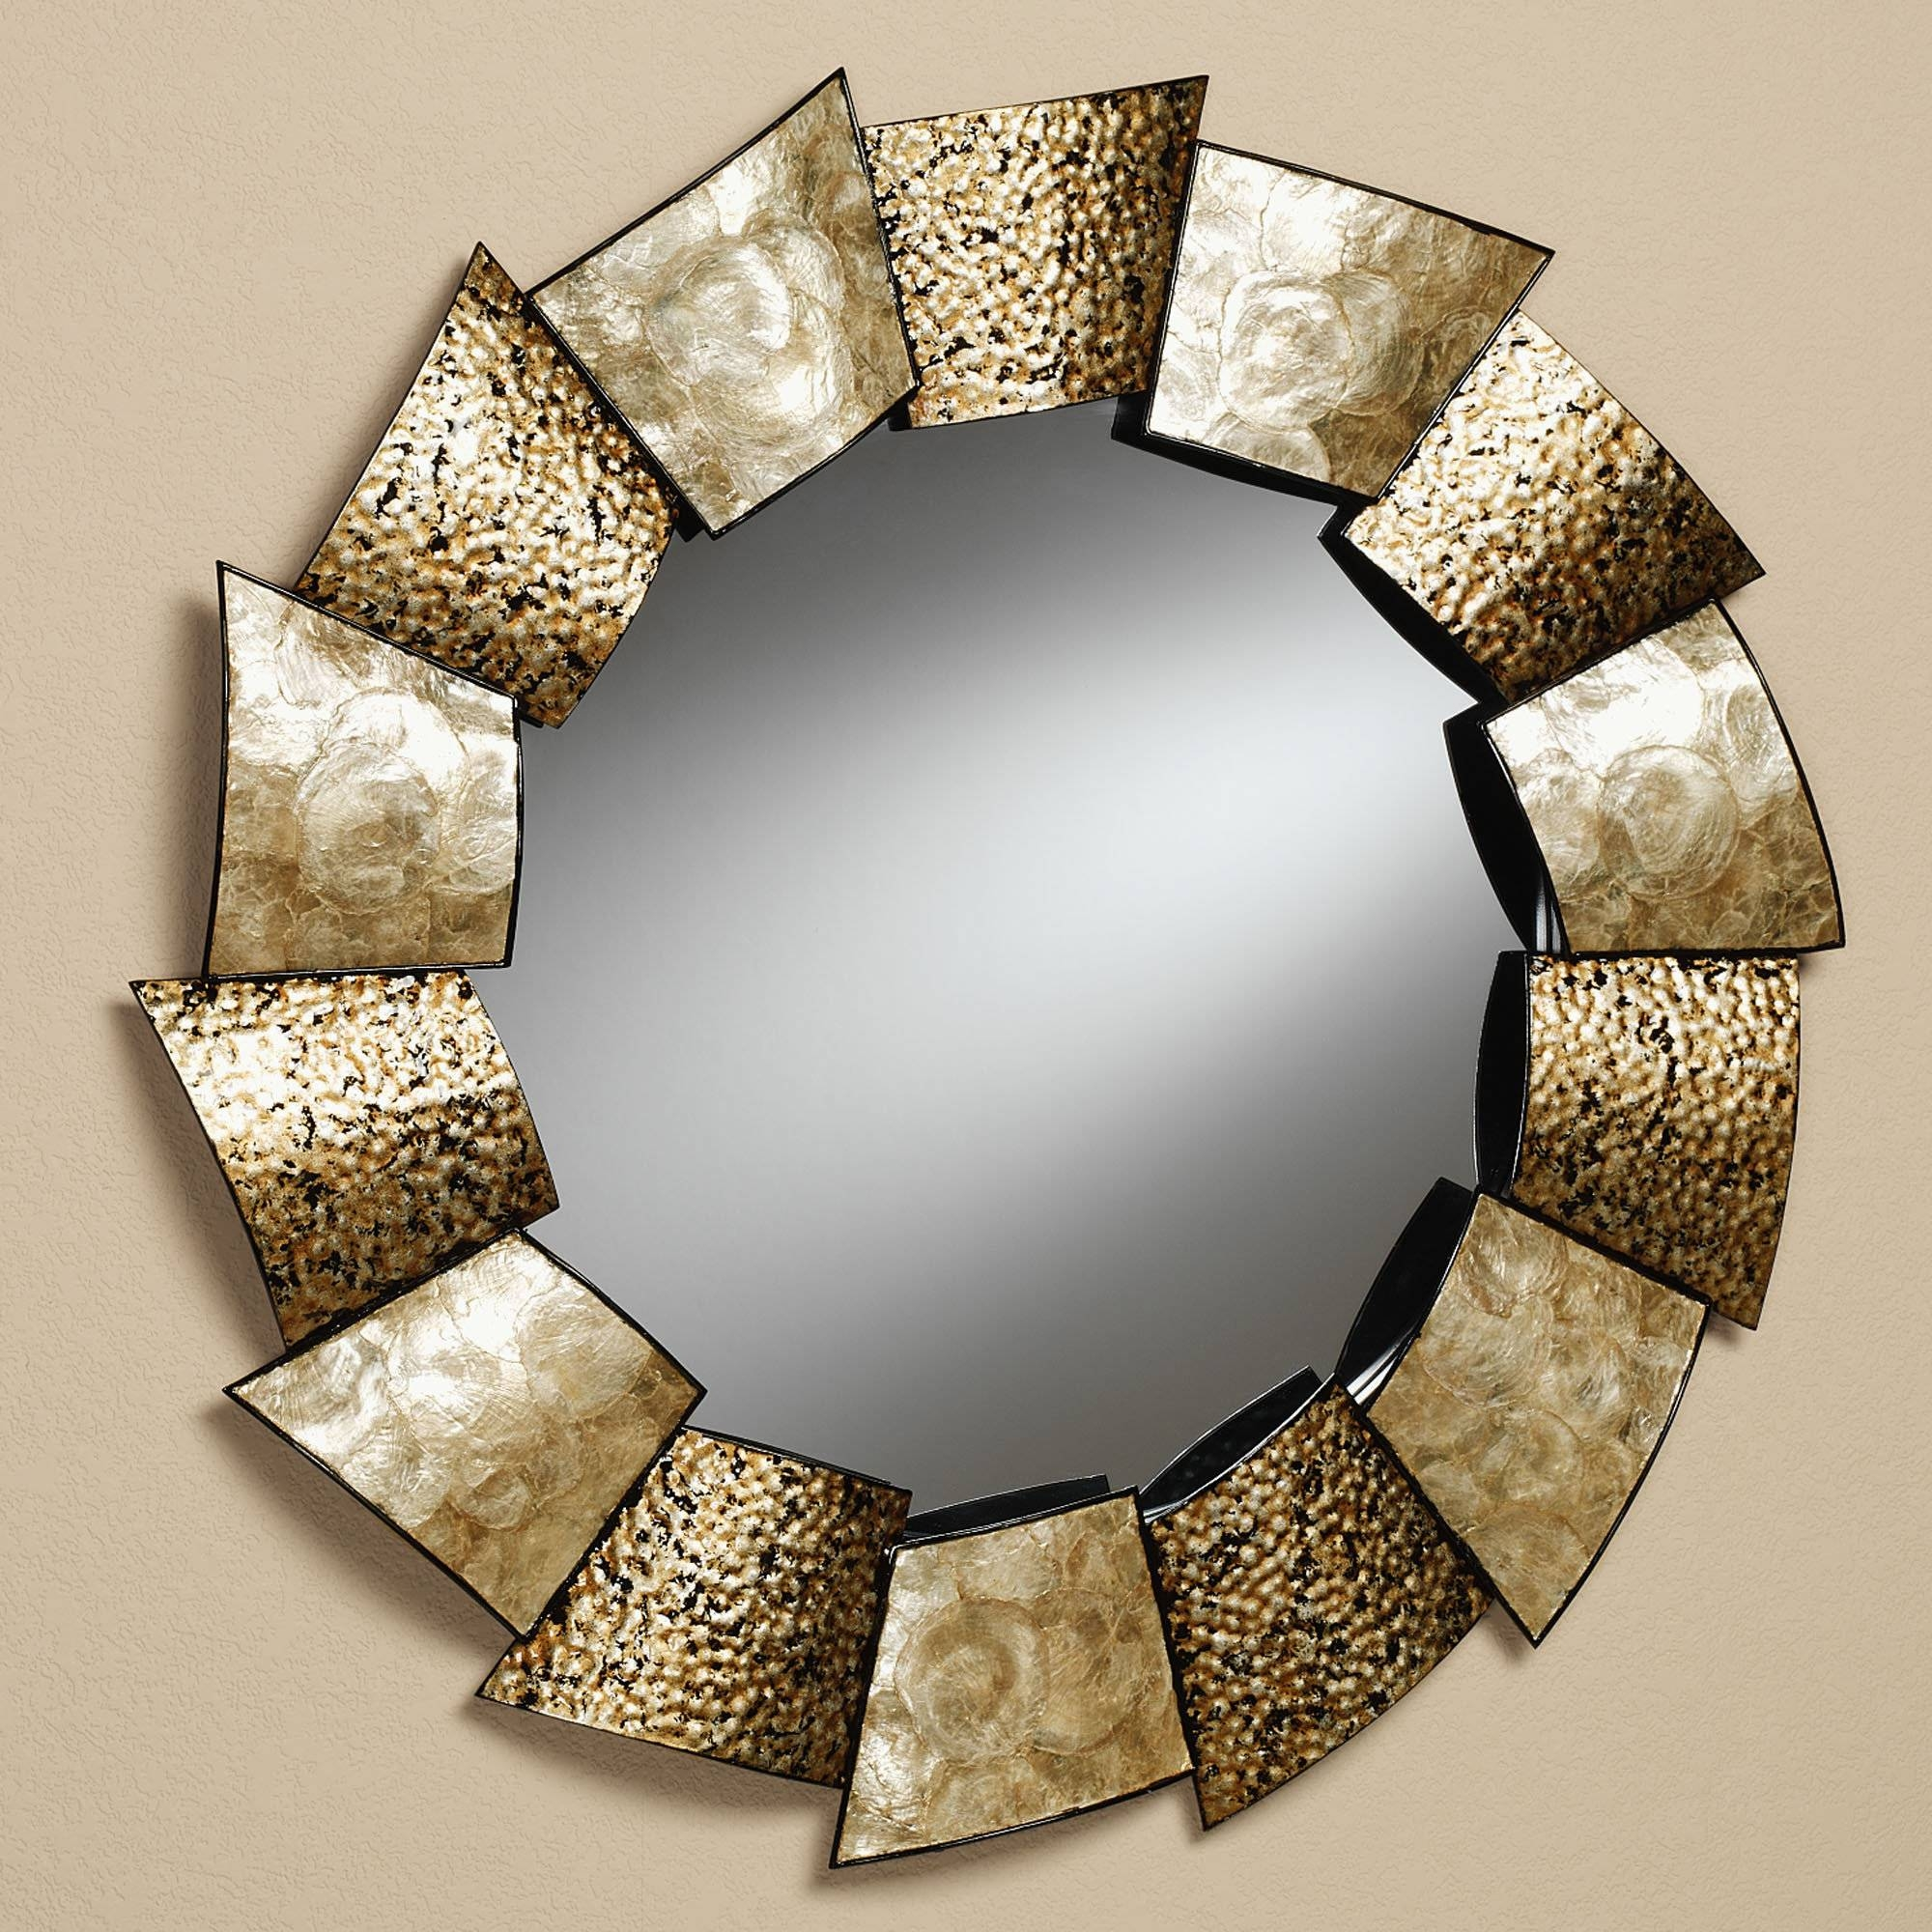 Unique Styles Of Decorative Wall Mirrors – Designinyou/decor Intended For Decorative Mirrors (View 15 of 15)